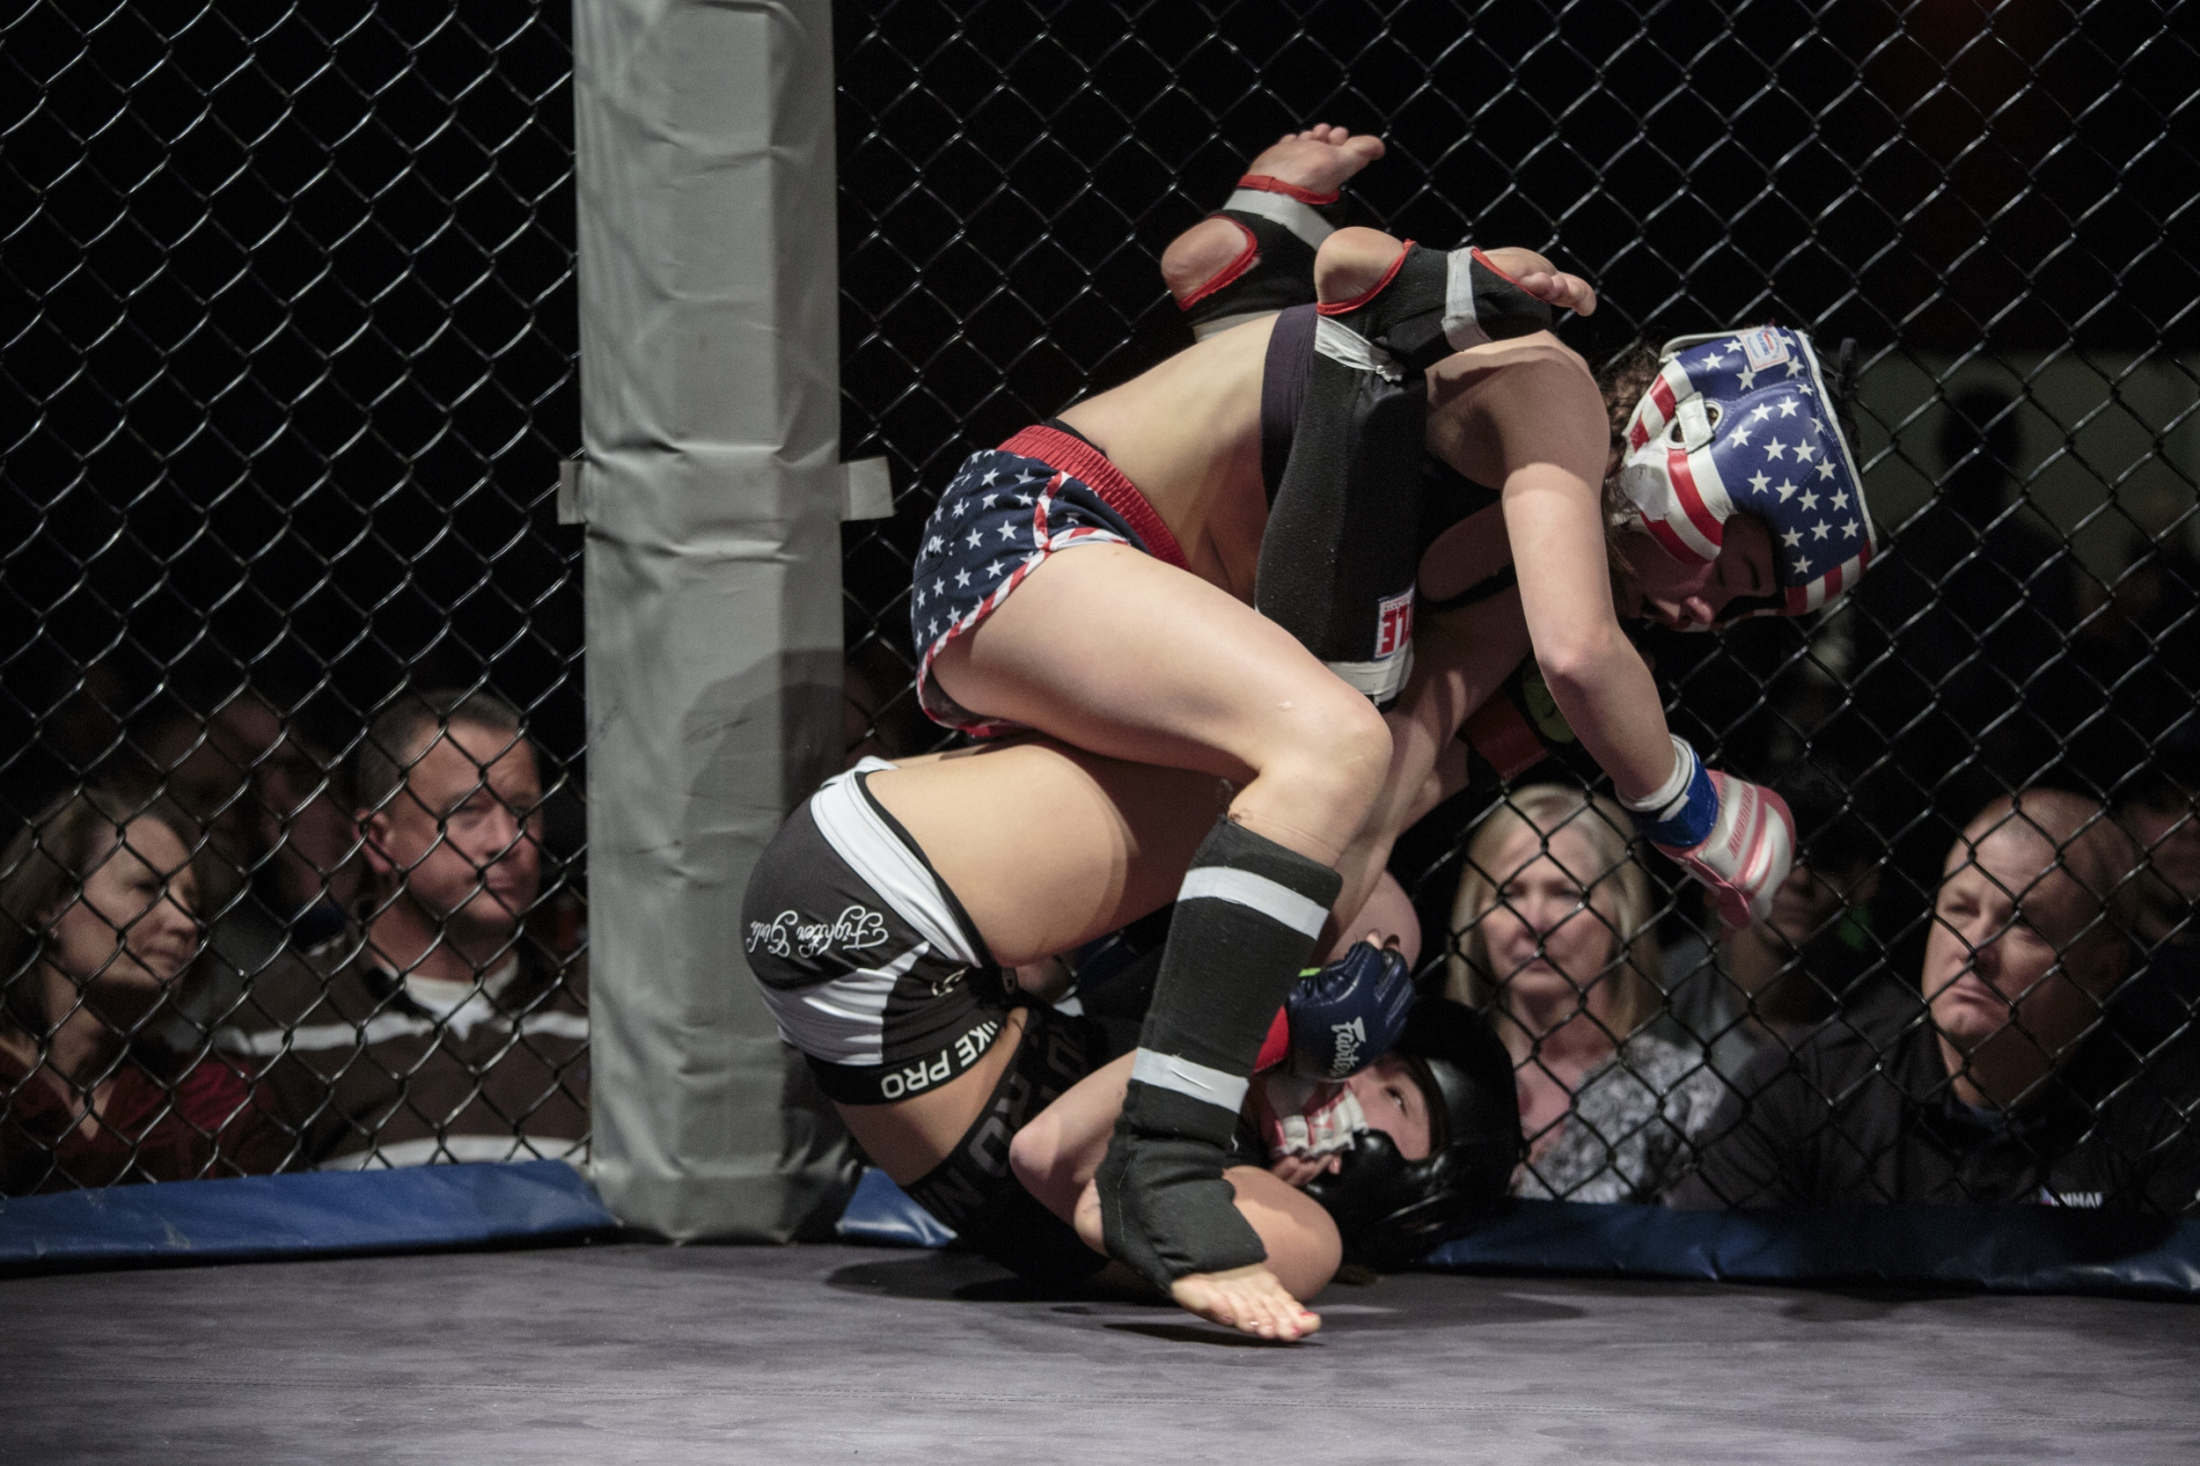 Shaniyah Carlson, 15, top, competes against Teddy Mandala, 14, during the U.S. Open Youth National. Youth MMA fights are similar to adult matches, except for shorter rounds and limited moves for safety.